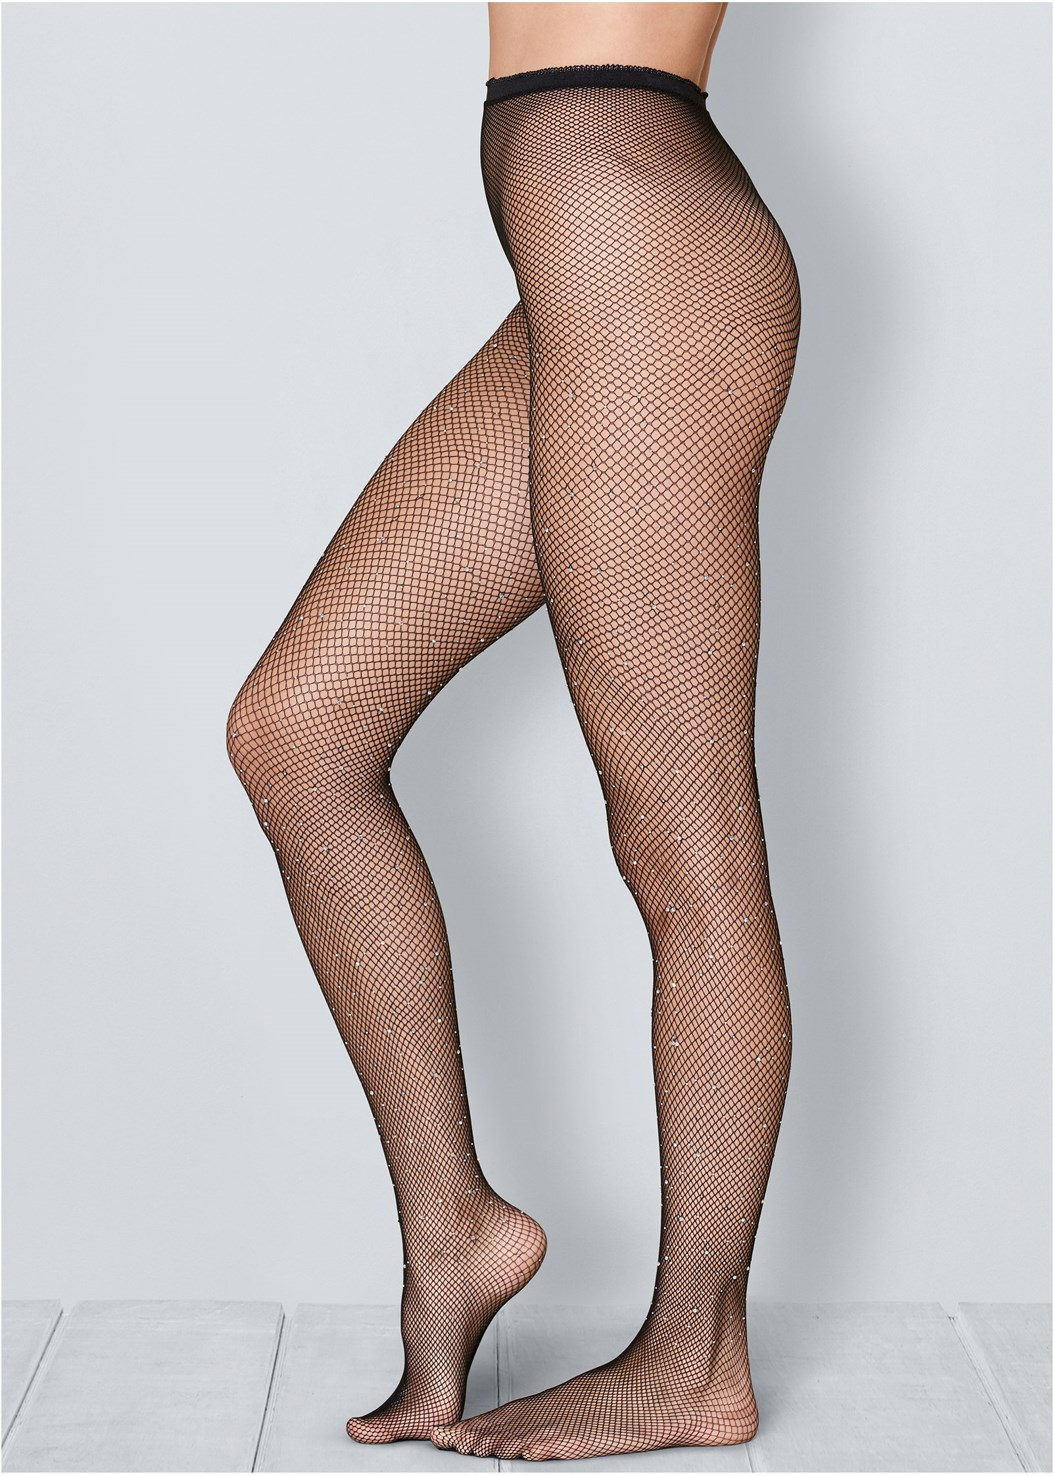 Rhinestone Fishnet Tights,Embellished Dress,Buckle Detail Boots